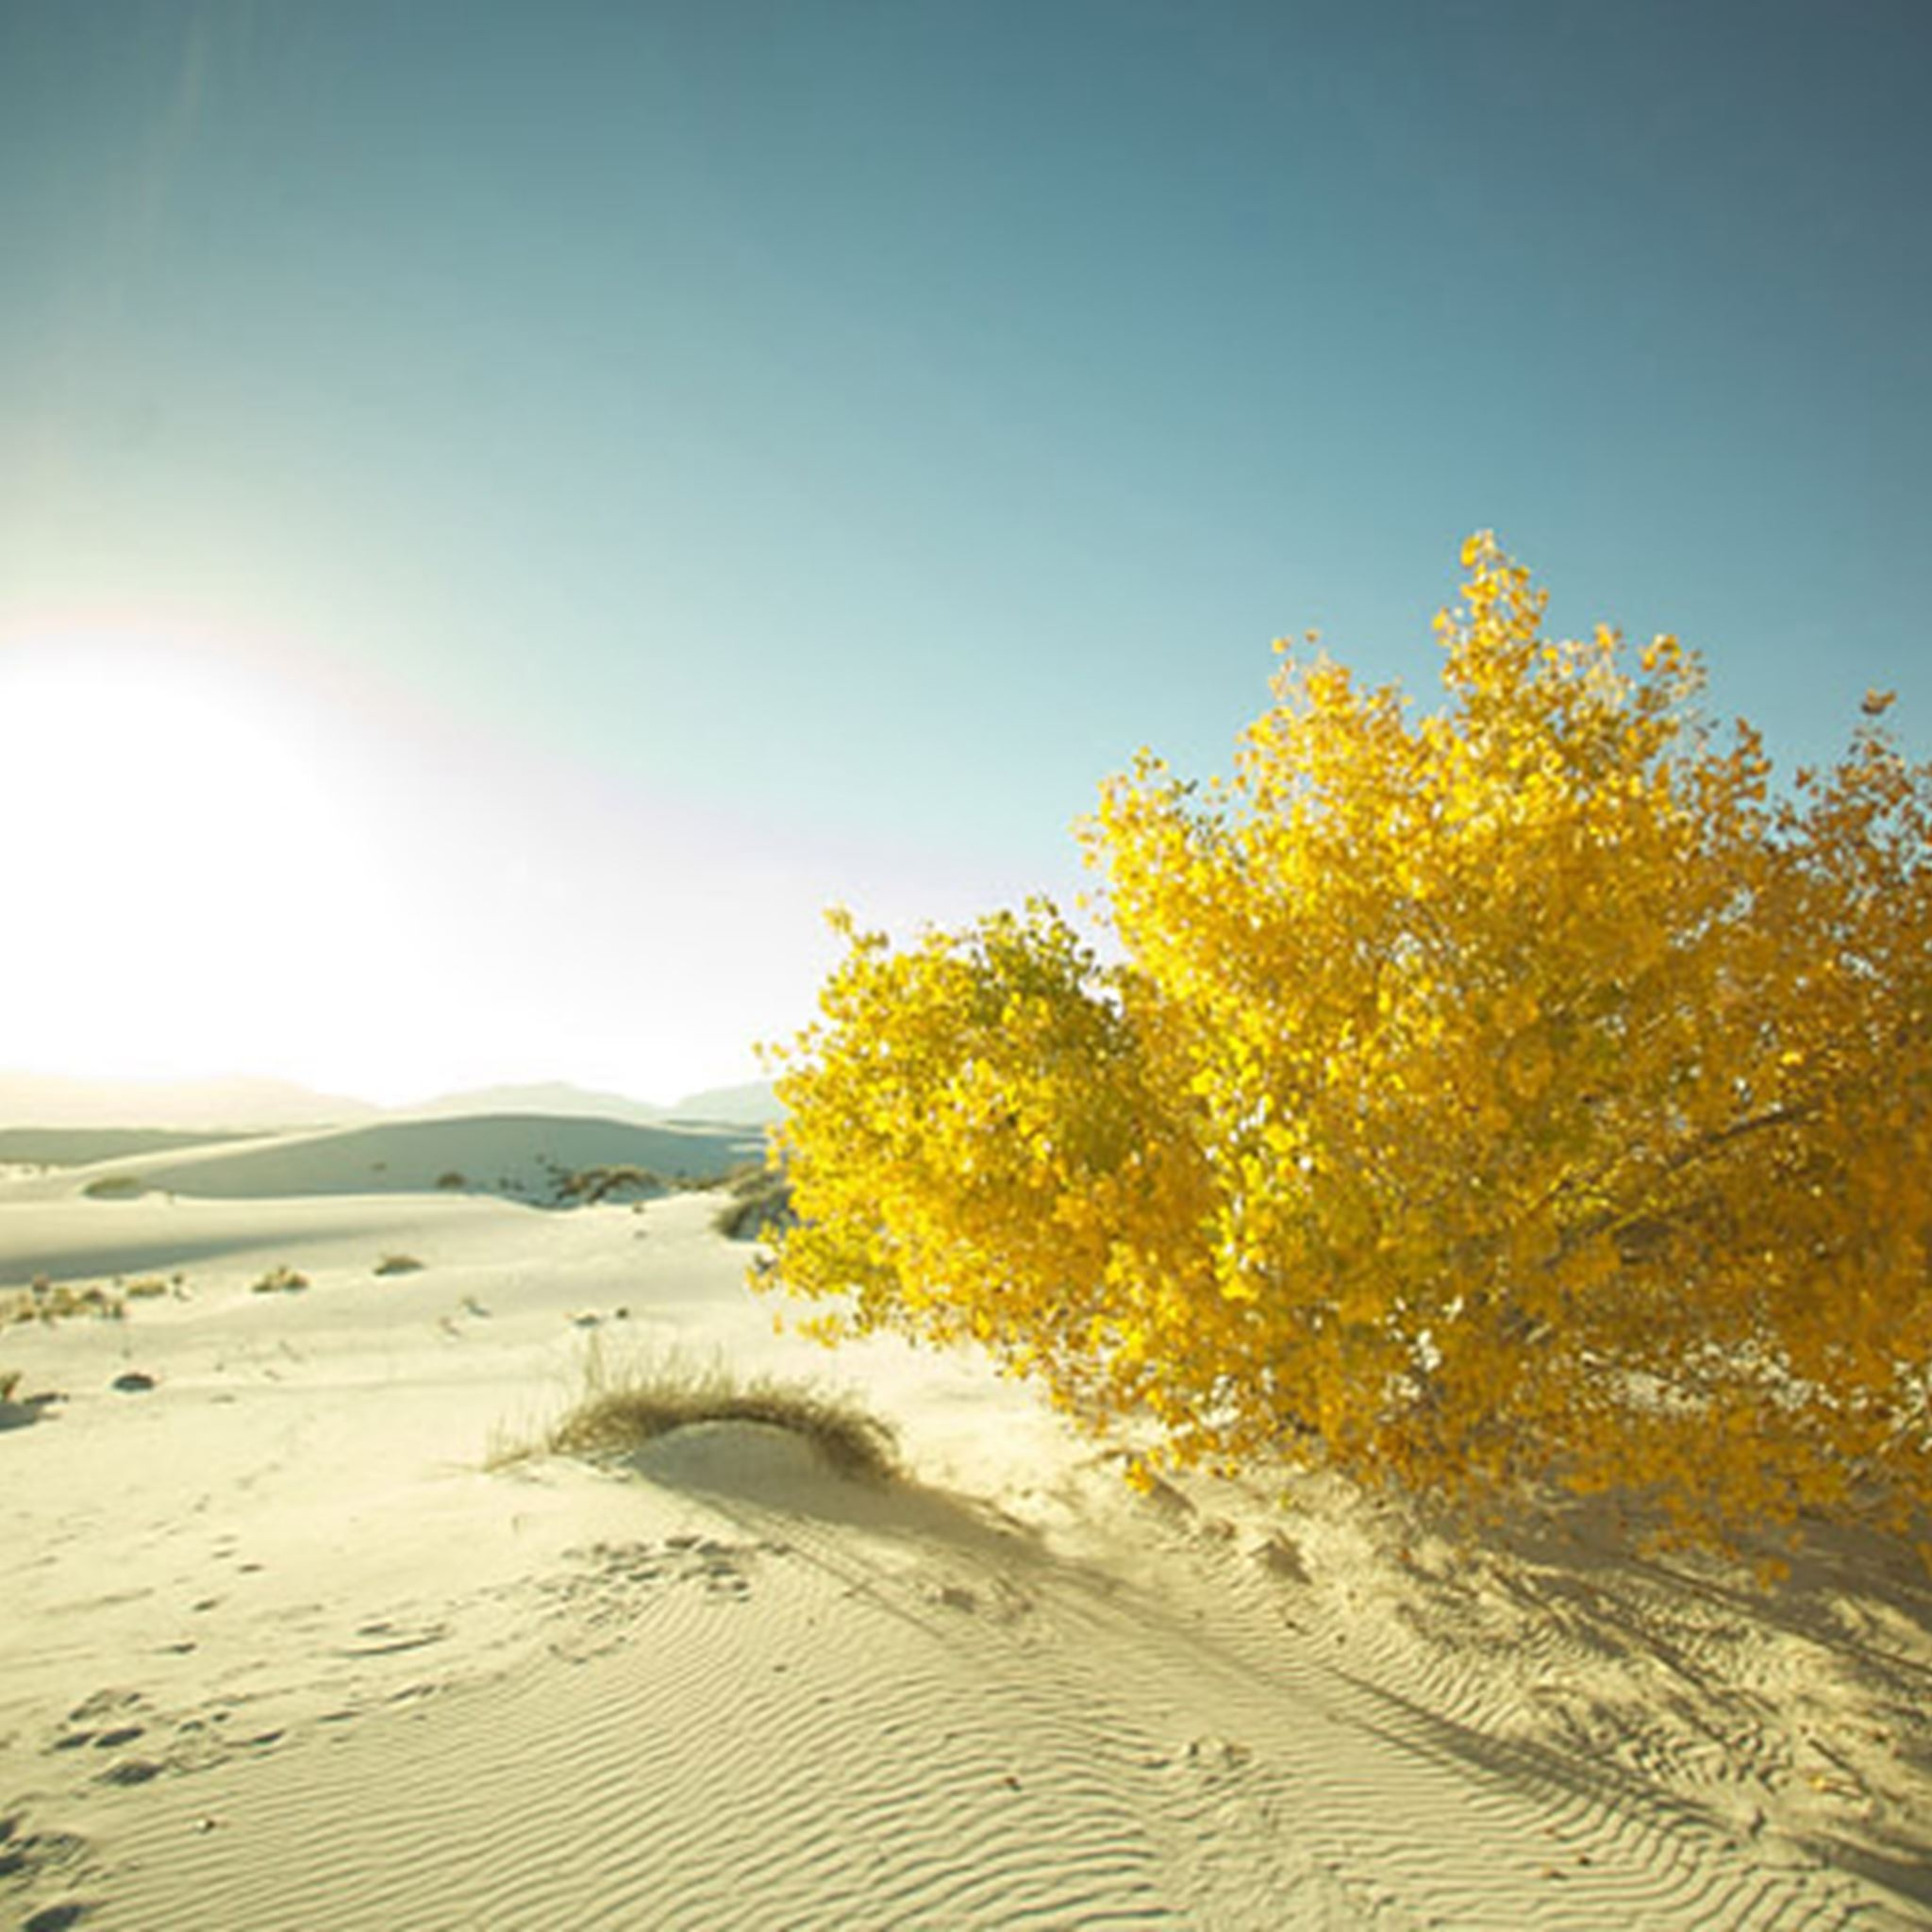 Wide Golden Tree Desert iPad Air wallpaper